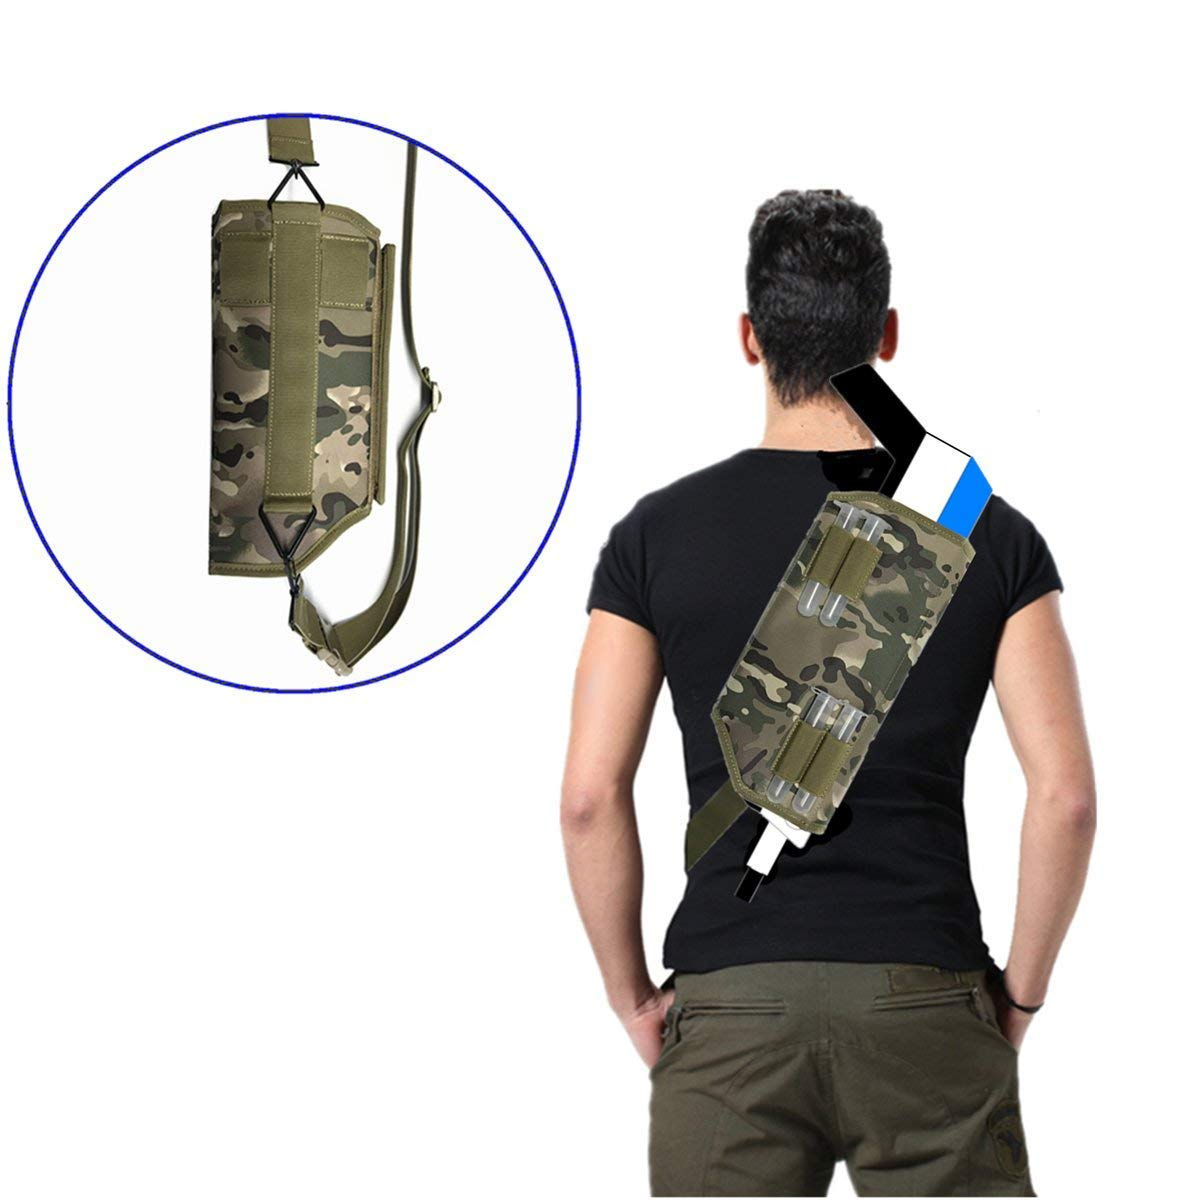 Binpure Camouflage Color Carrying Bag Crossbody Bag for Insect Eradication Bug-A-Salt Camofly Version 2.0£¬Can Be Hung On A Belt (Camouflage) EOS-SUN